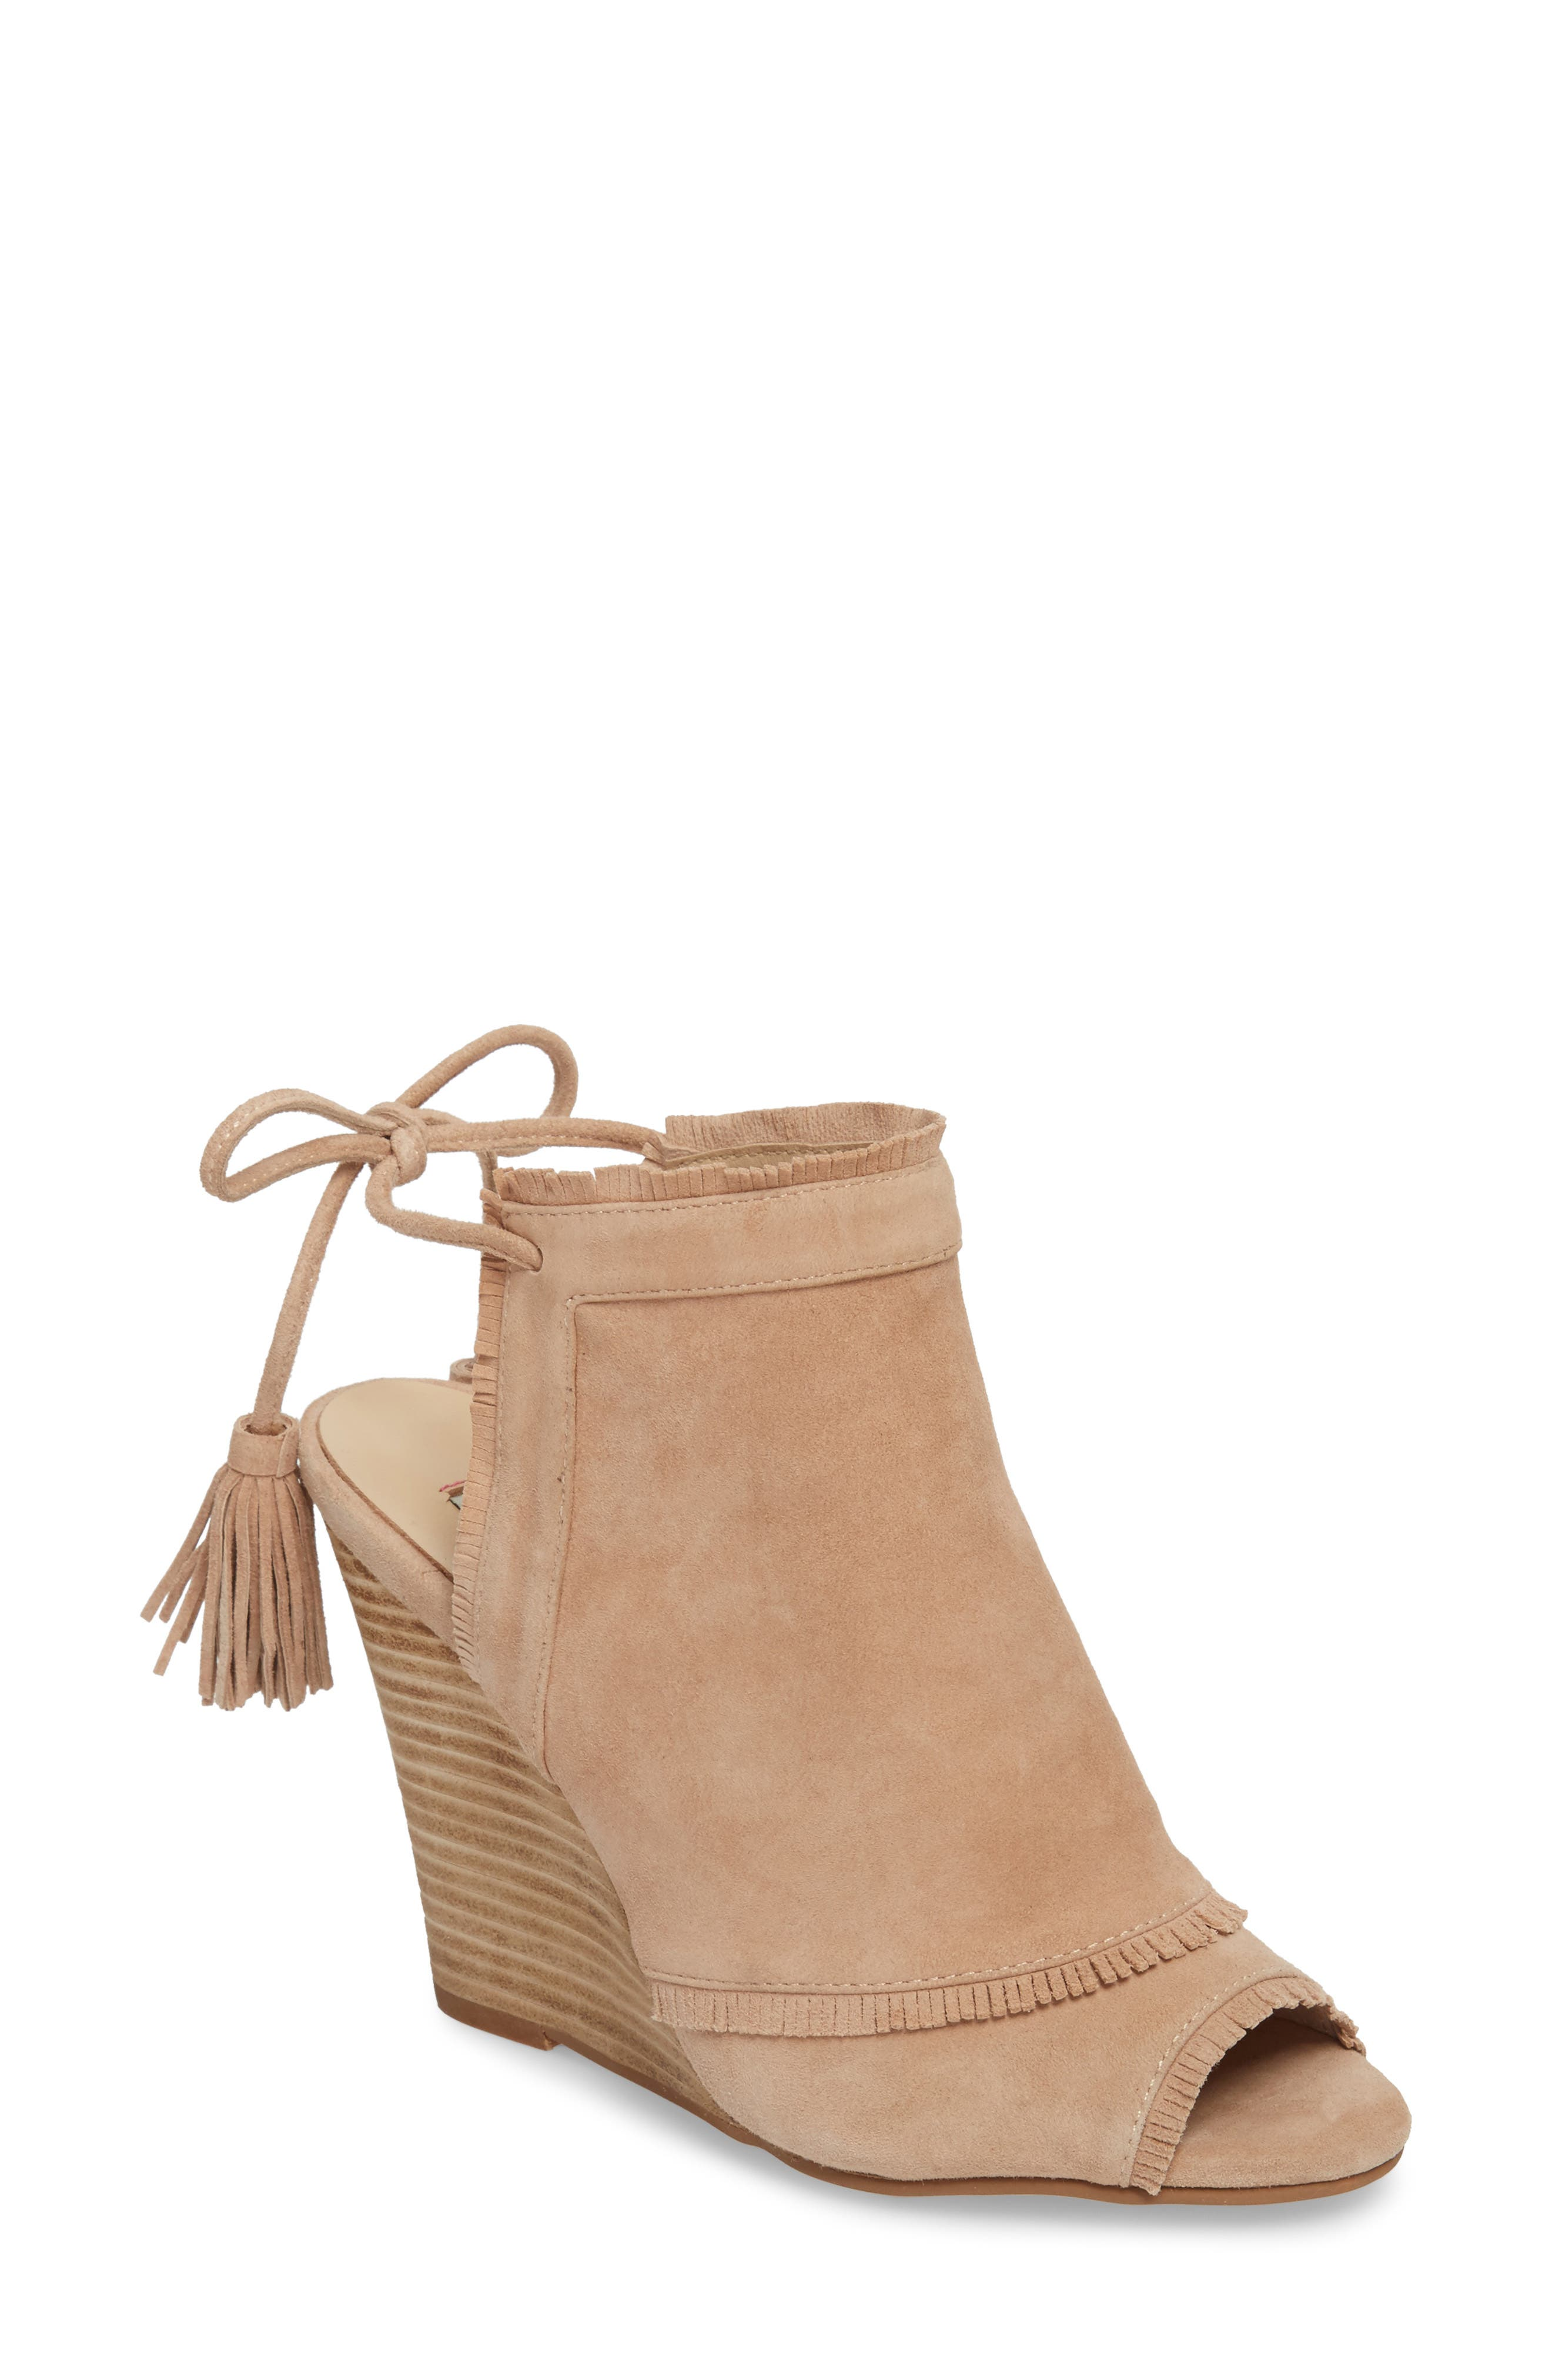 Leilani Wedge,                             Main thumbnail 1, color,                             Tigers Eye Suede